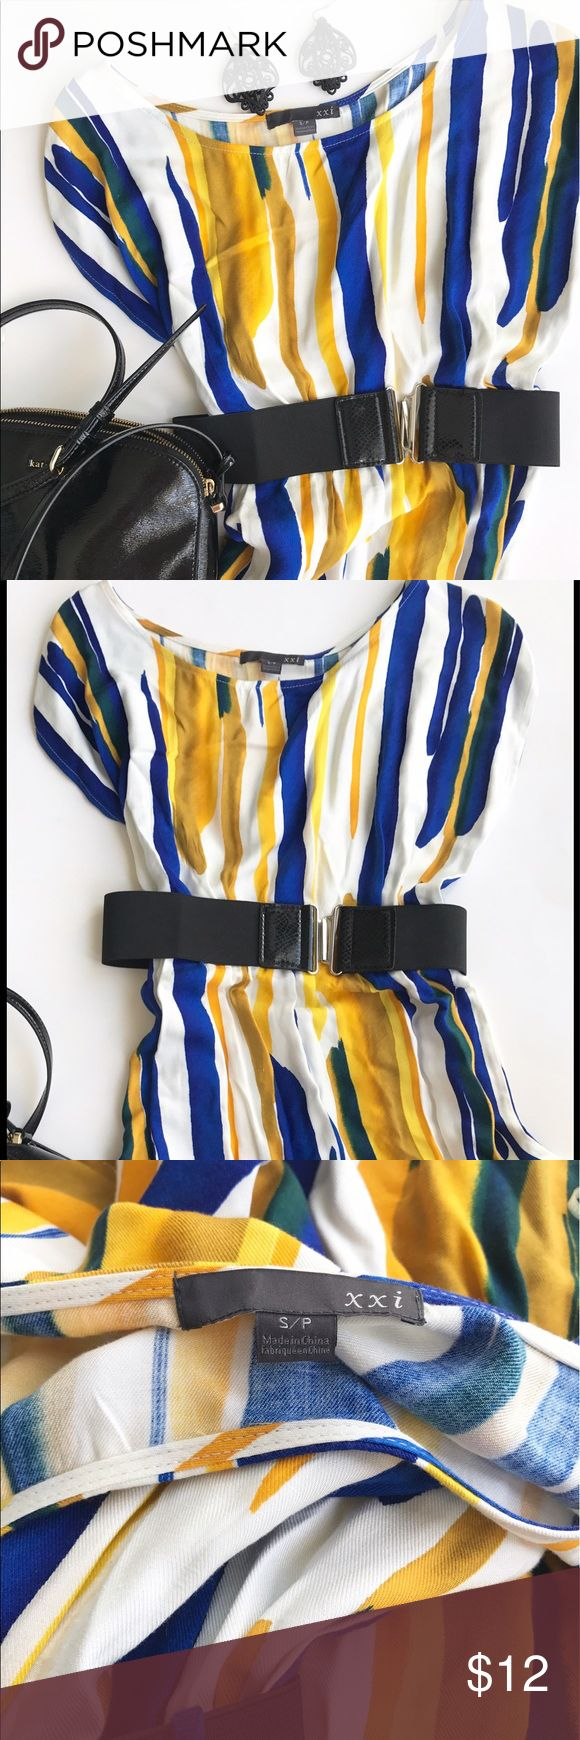 Blue and yellow forever 21 dress and belt Vibrant blue and yellow dress with black belt from By Forever 21. Excellent condition! (Purse and earrings not included; for styling purposes only) Forever 21 Dresses